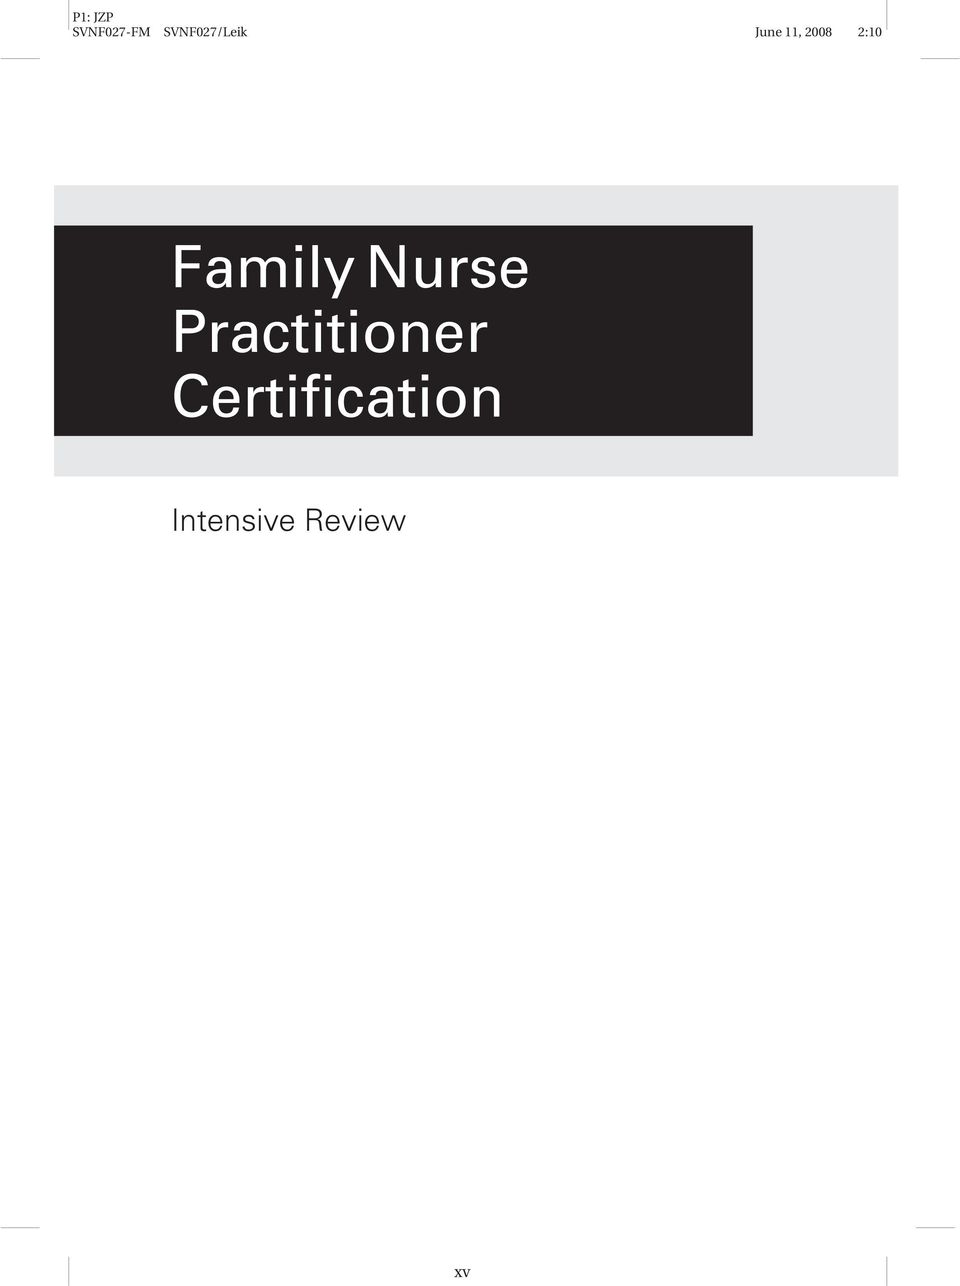 Family Nurse Practitioner Certification Pdf